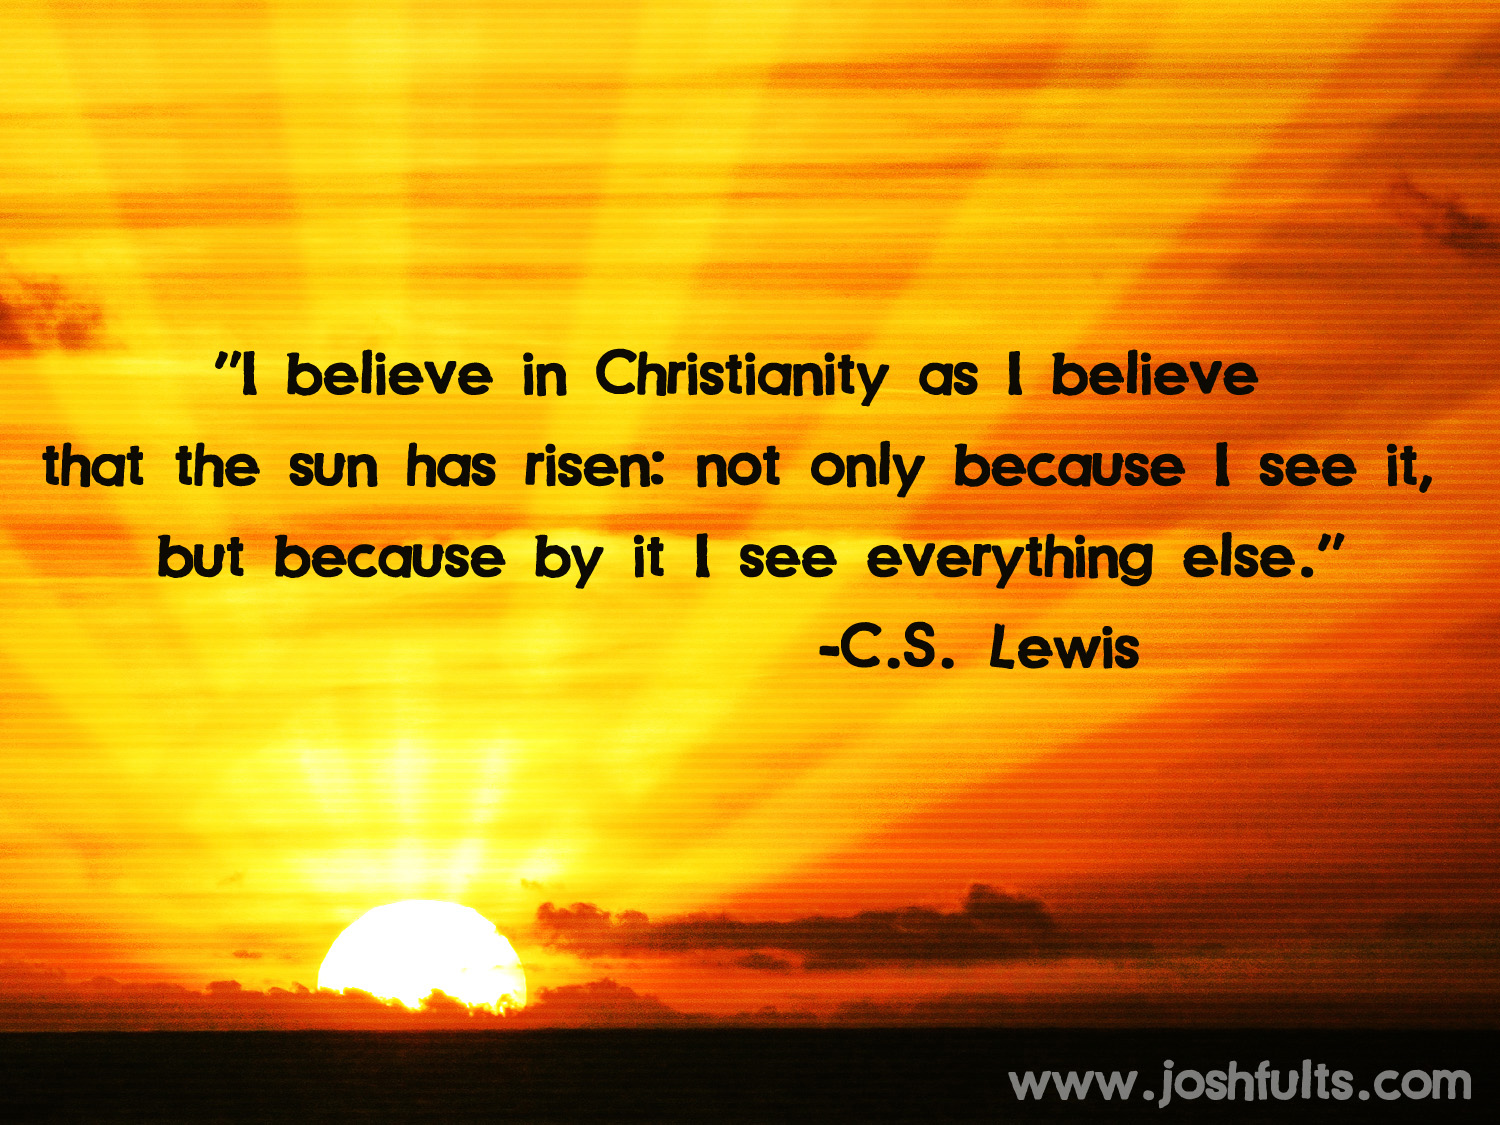 Religious Quotes On Life Inspiring And Uplifting Christian Quotes And Images About Life To